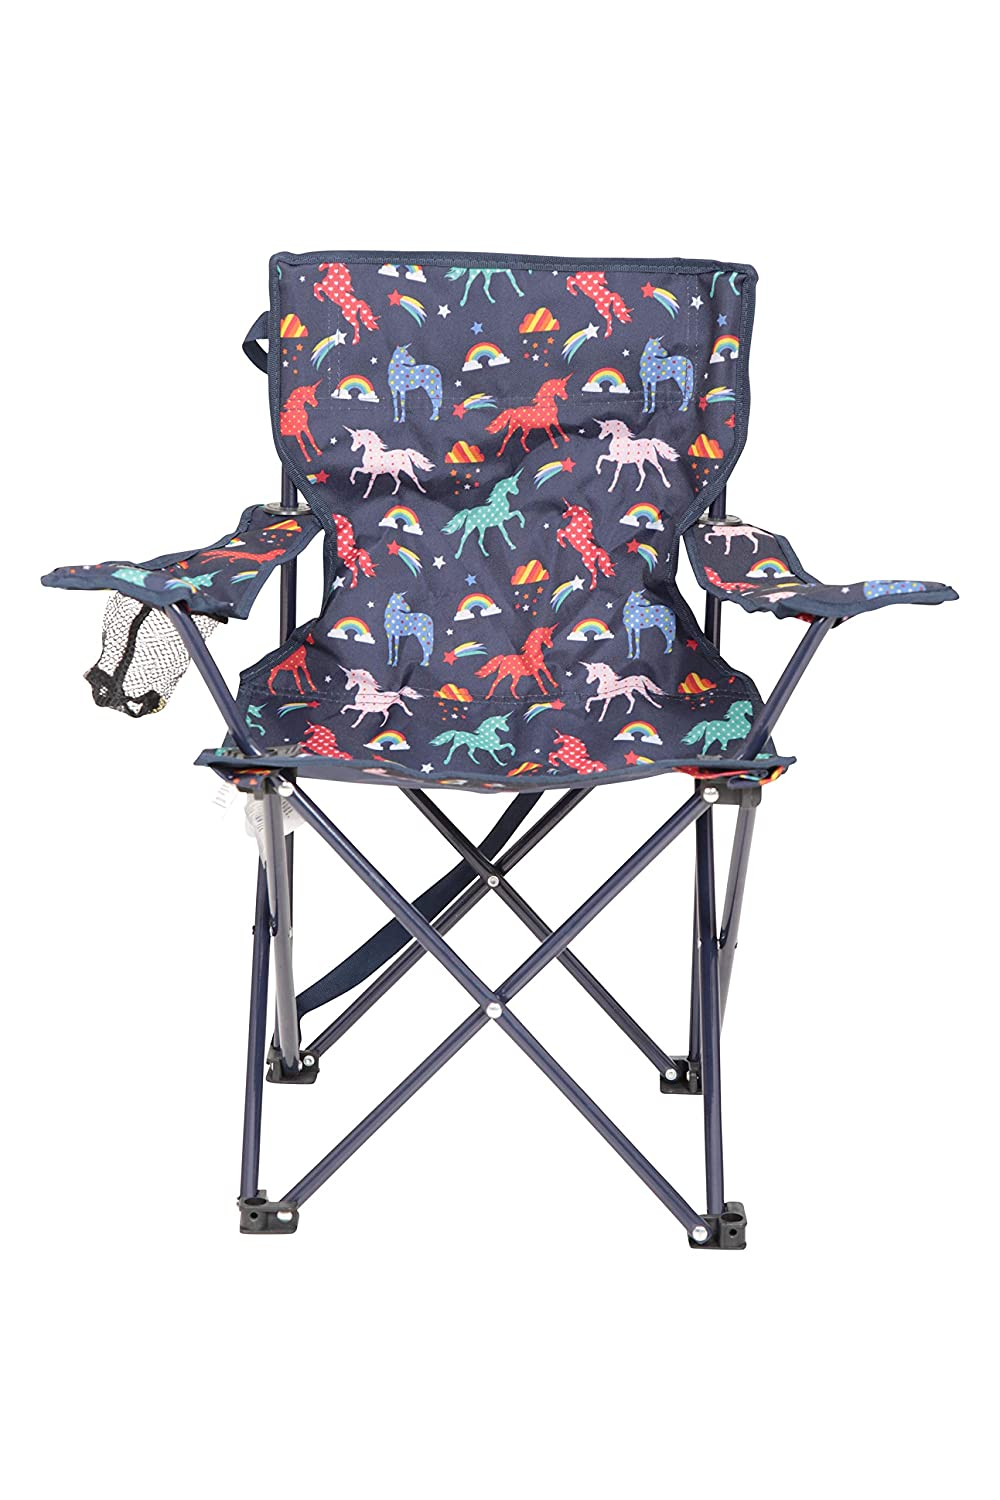 Mountain Warehouse Patterned Mini Folding Chair – Kids Camping Chair